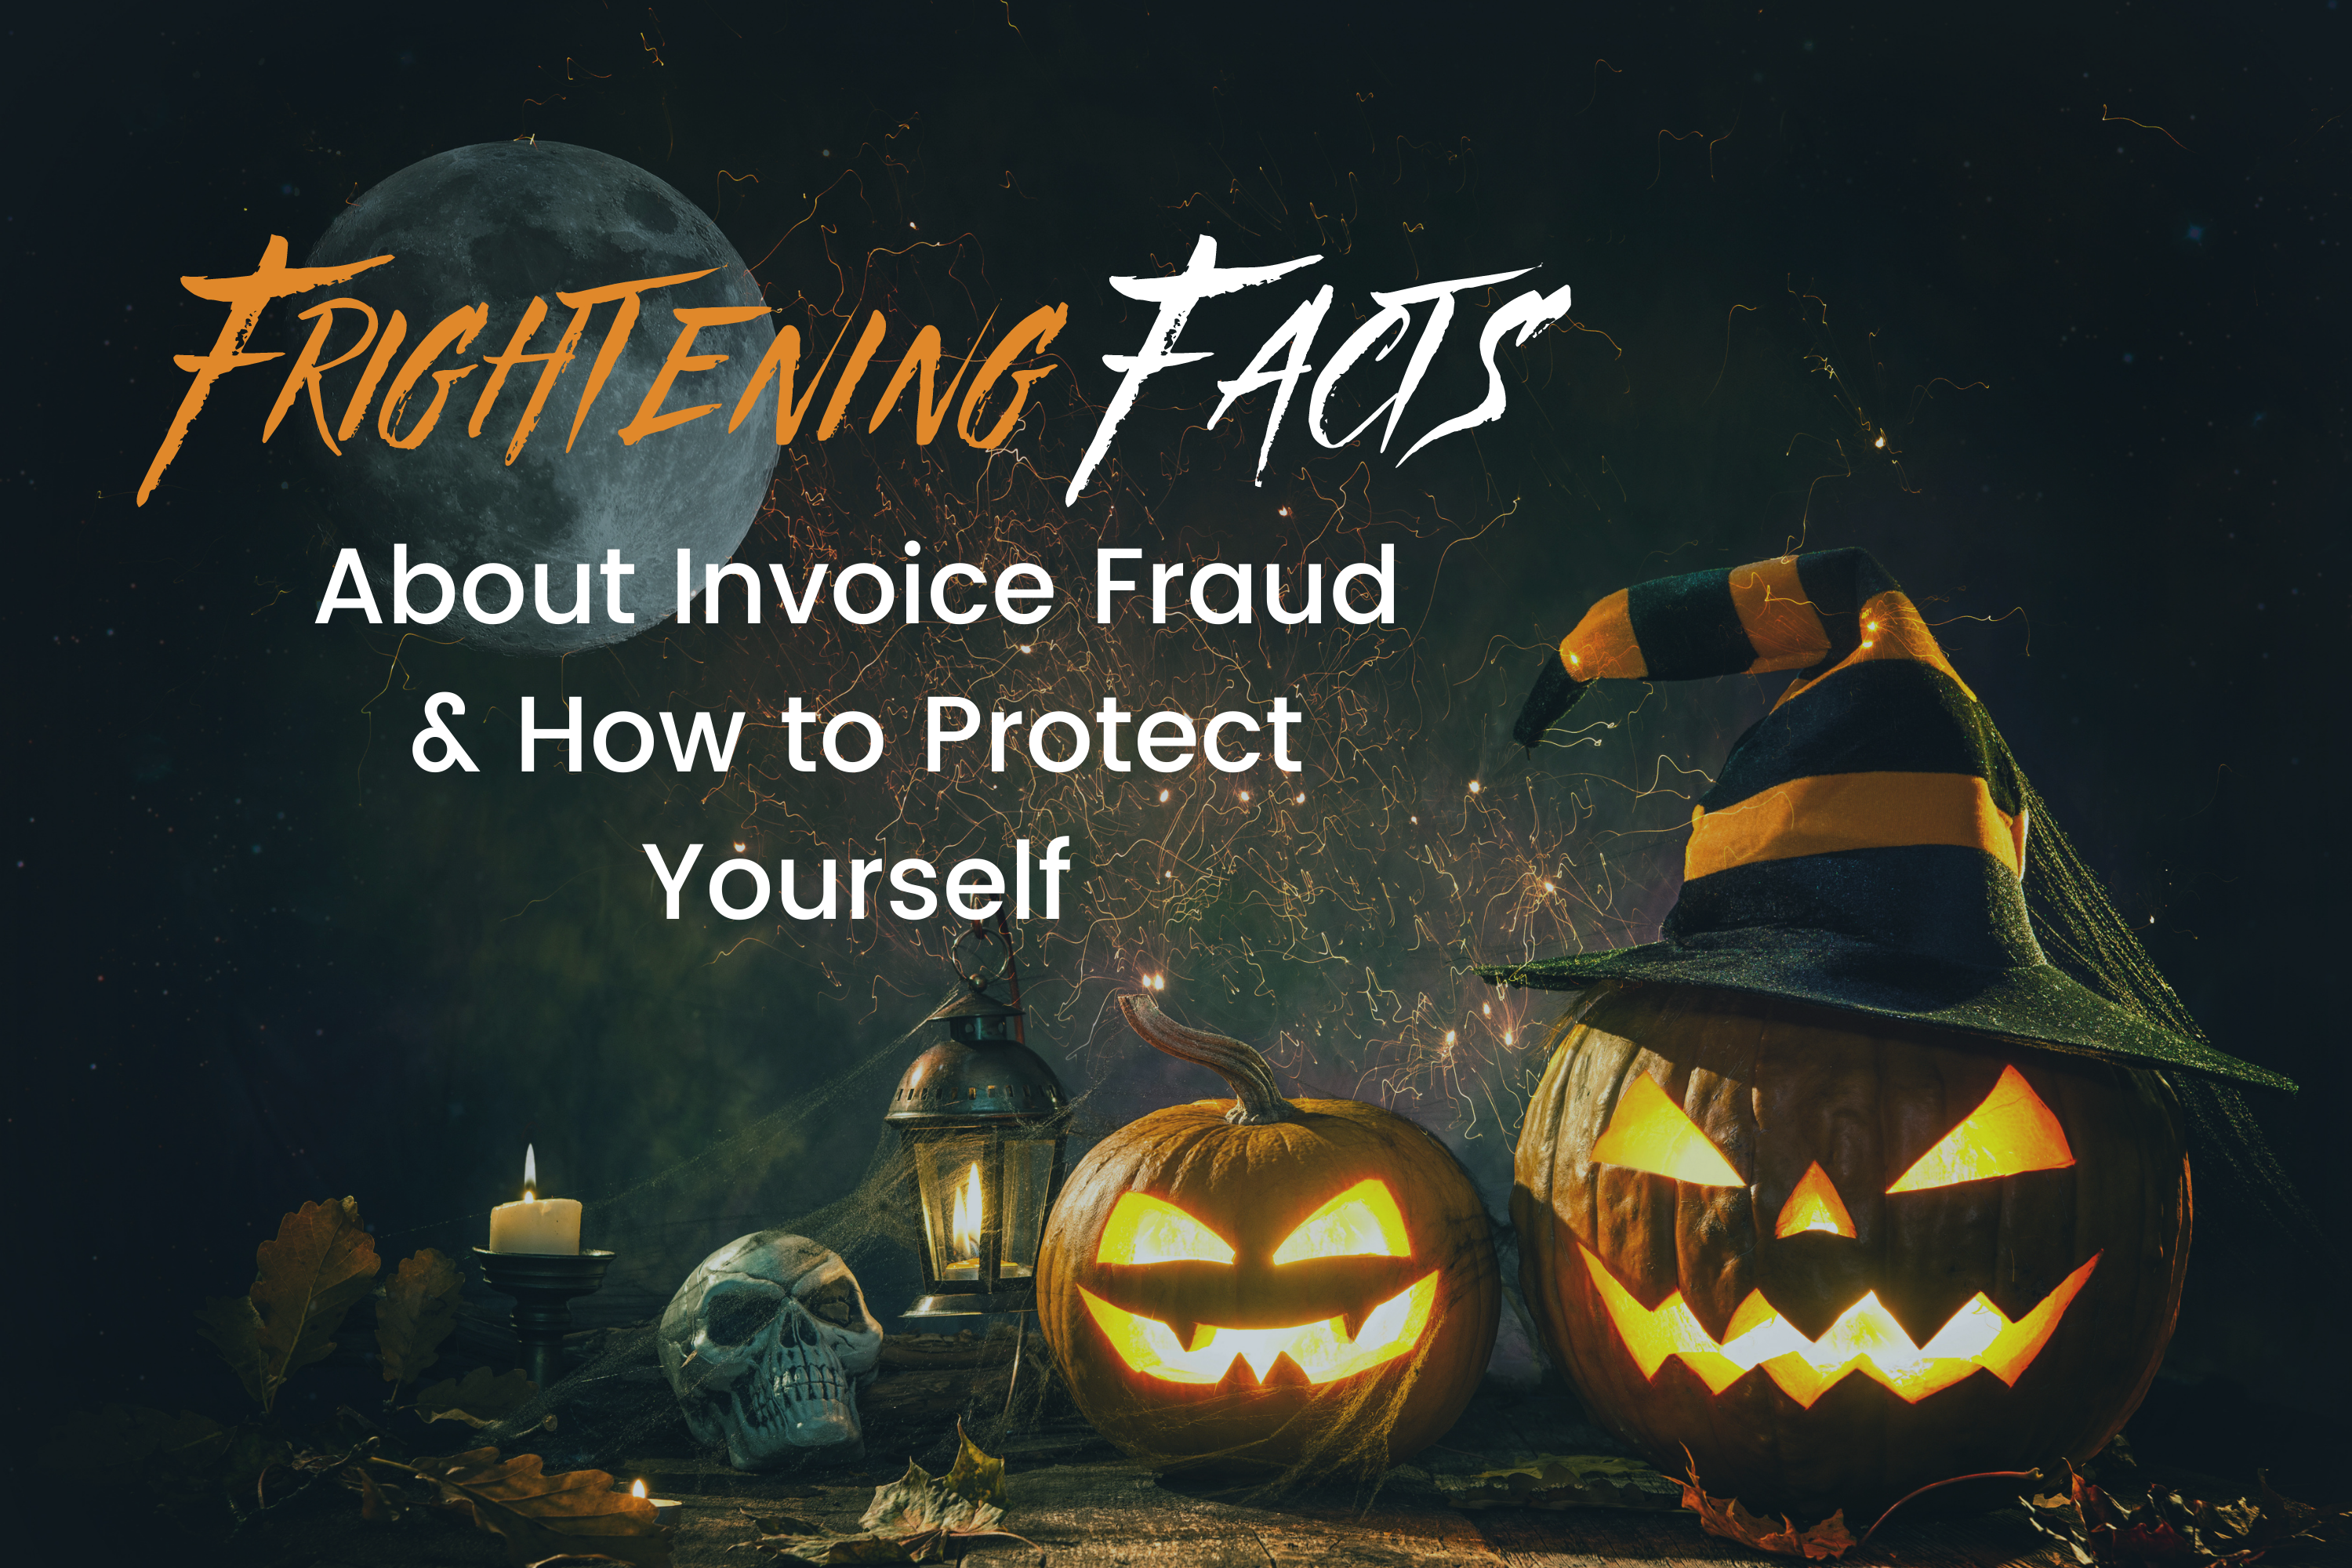 Halloween-pumpkin-head-jack-lantern-with-burning-candles-conceptual-with-tect-overtop-frightening-facts-about-invoice-fraud-and-how-to-protect-yourself